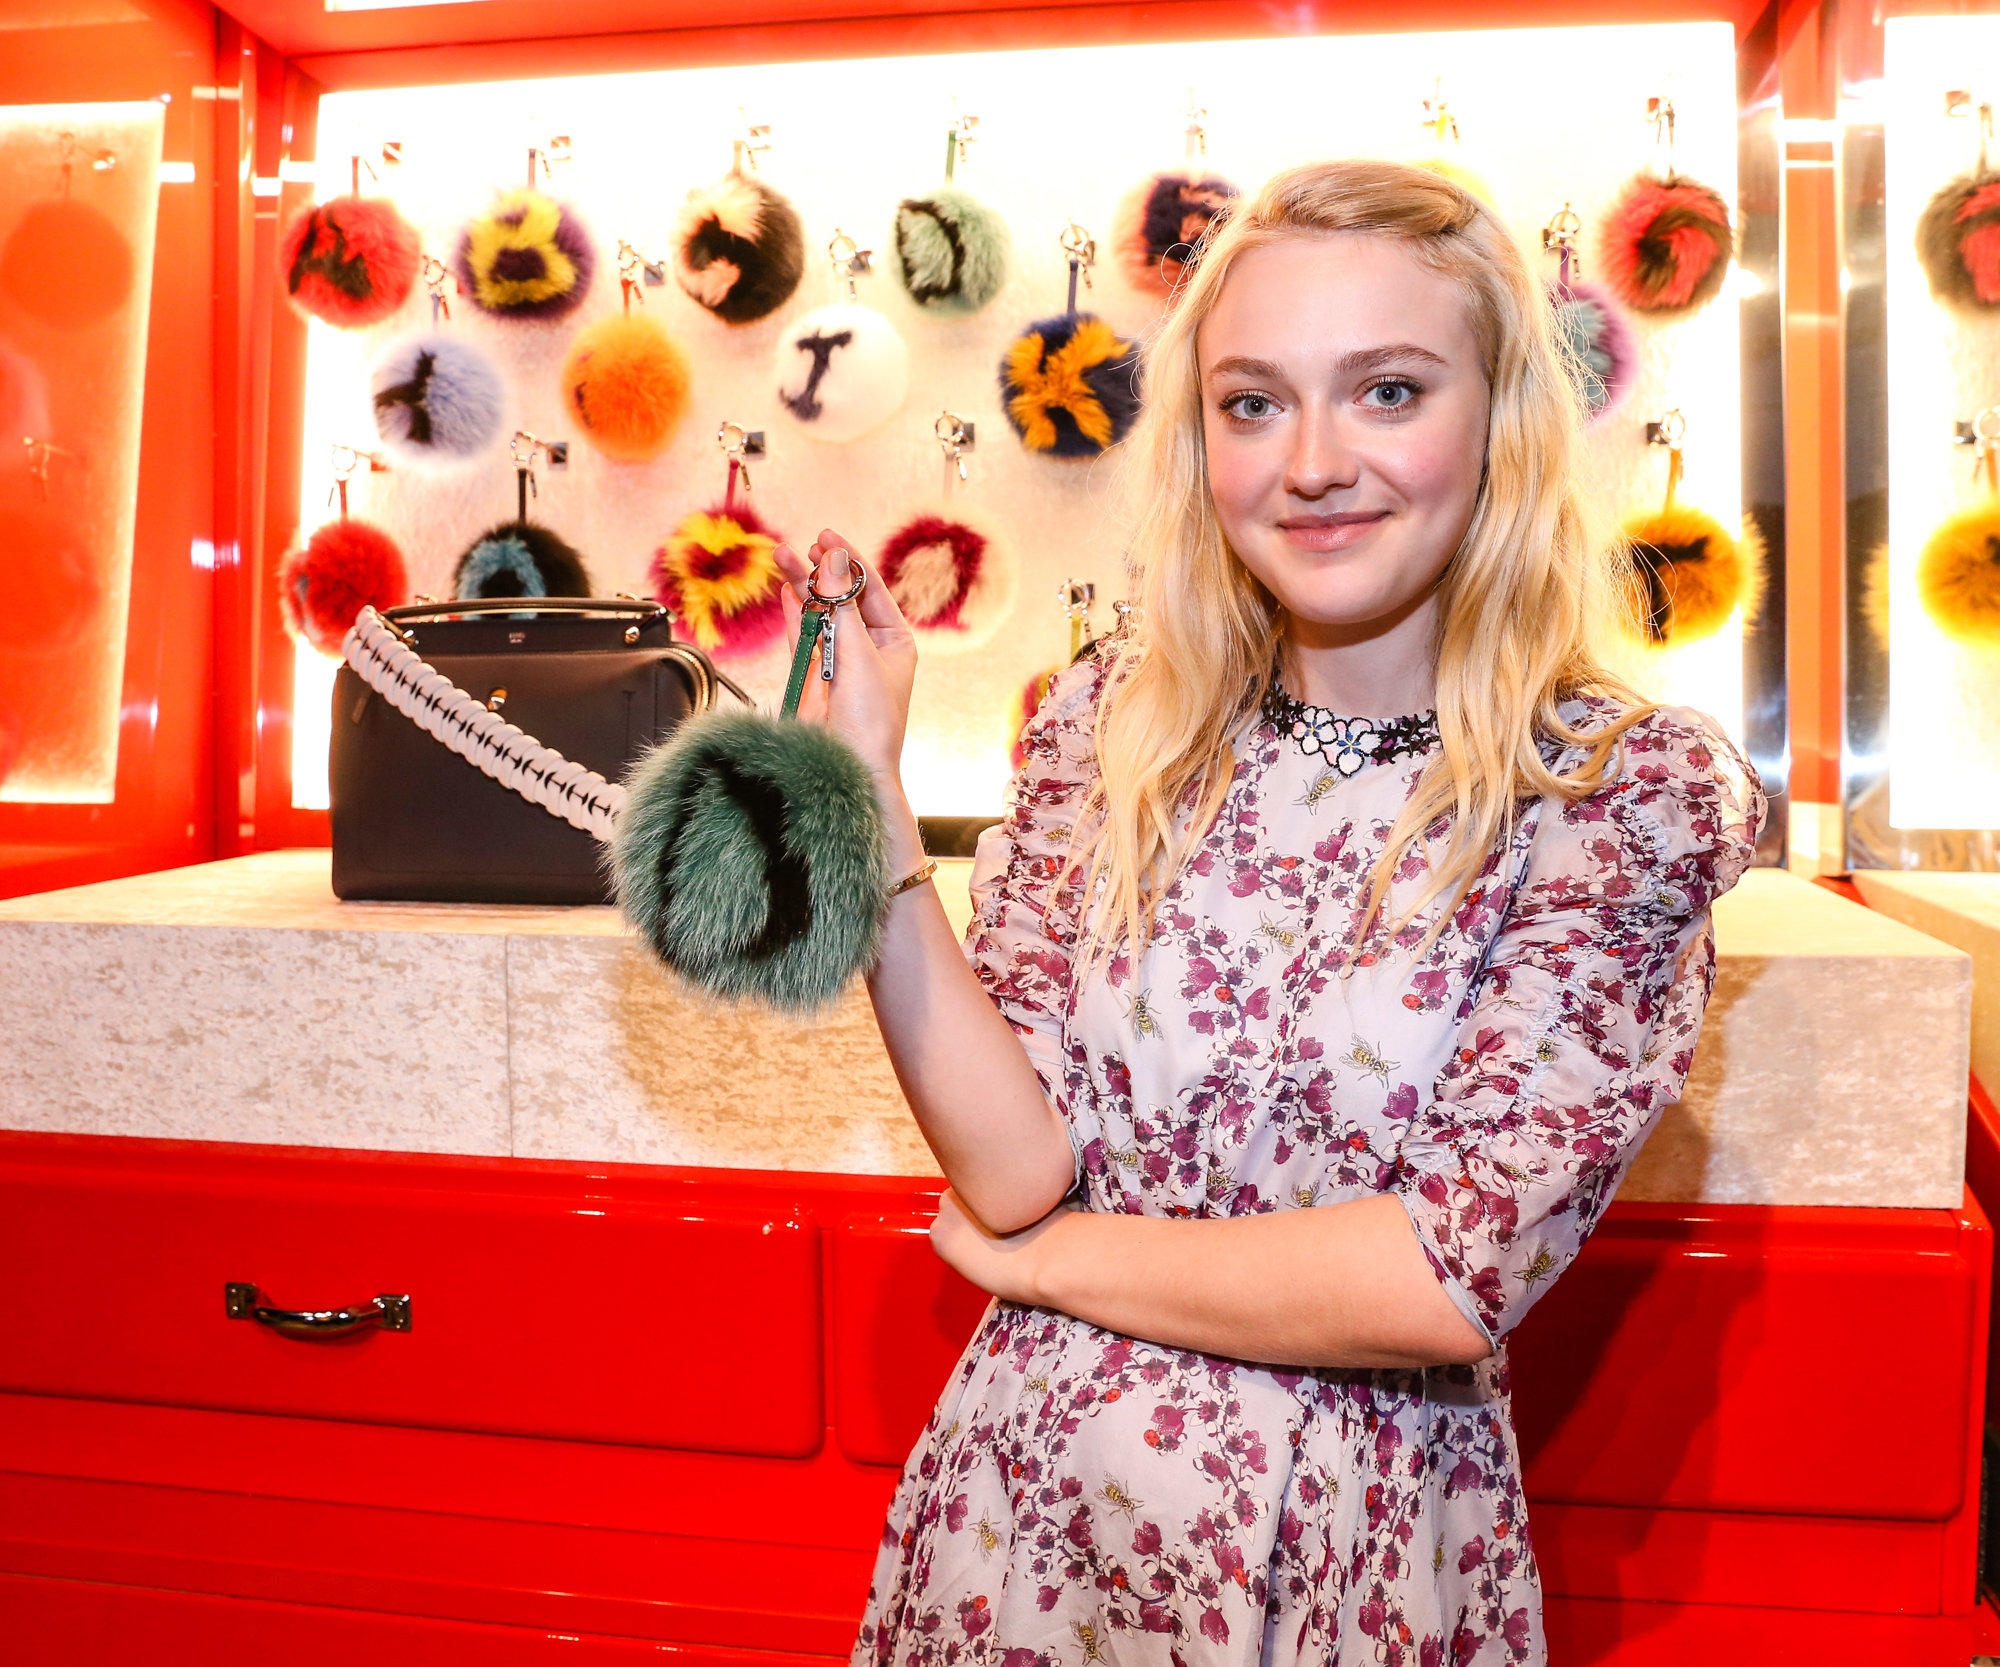 Dakota Fanning Fendi Pop-Up 1 - Lead 2016